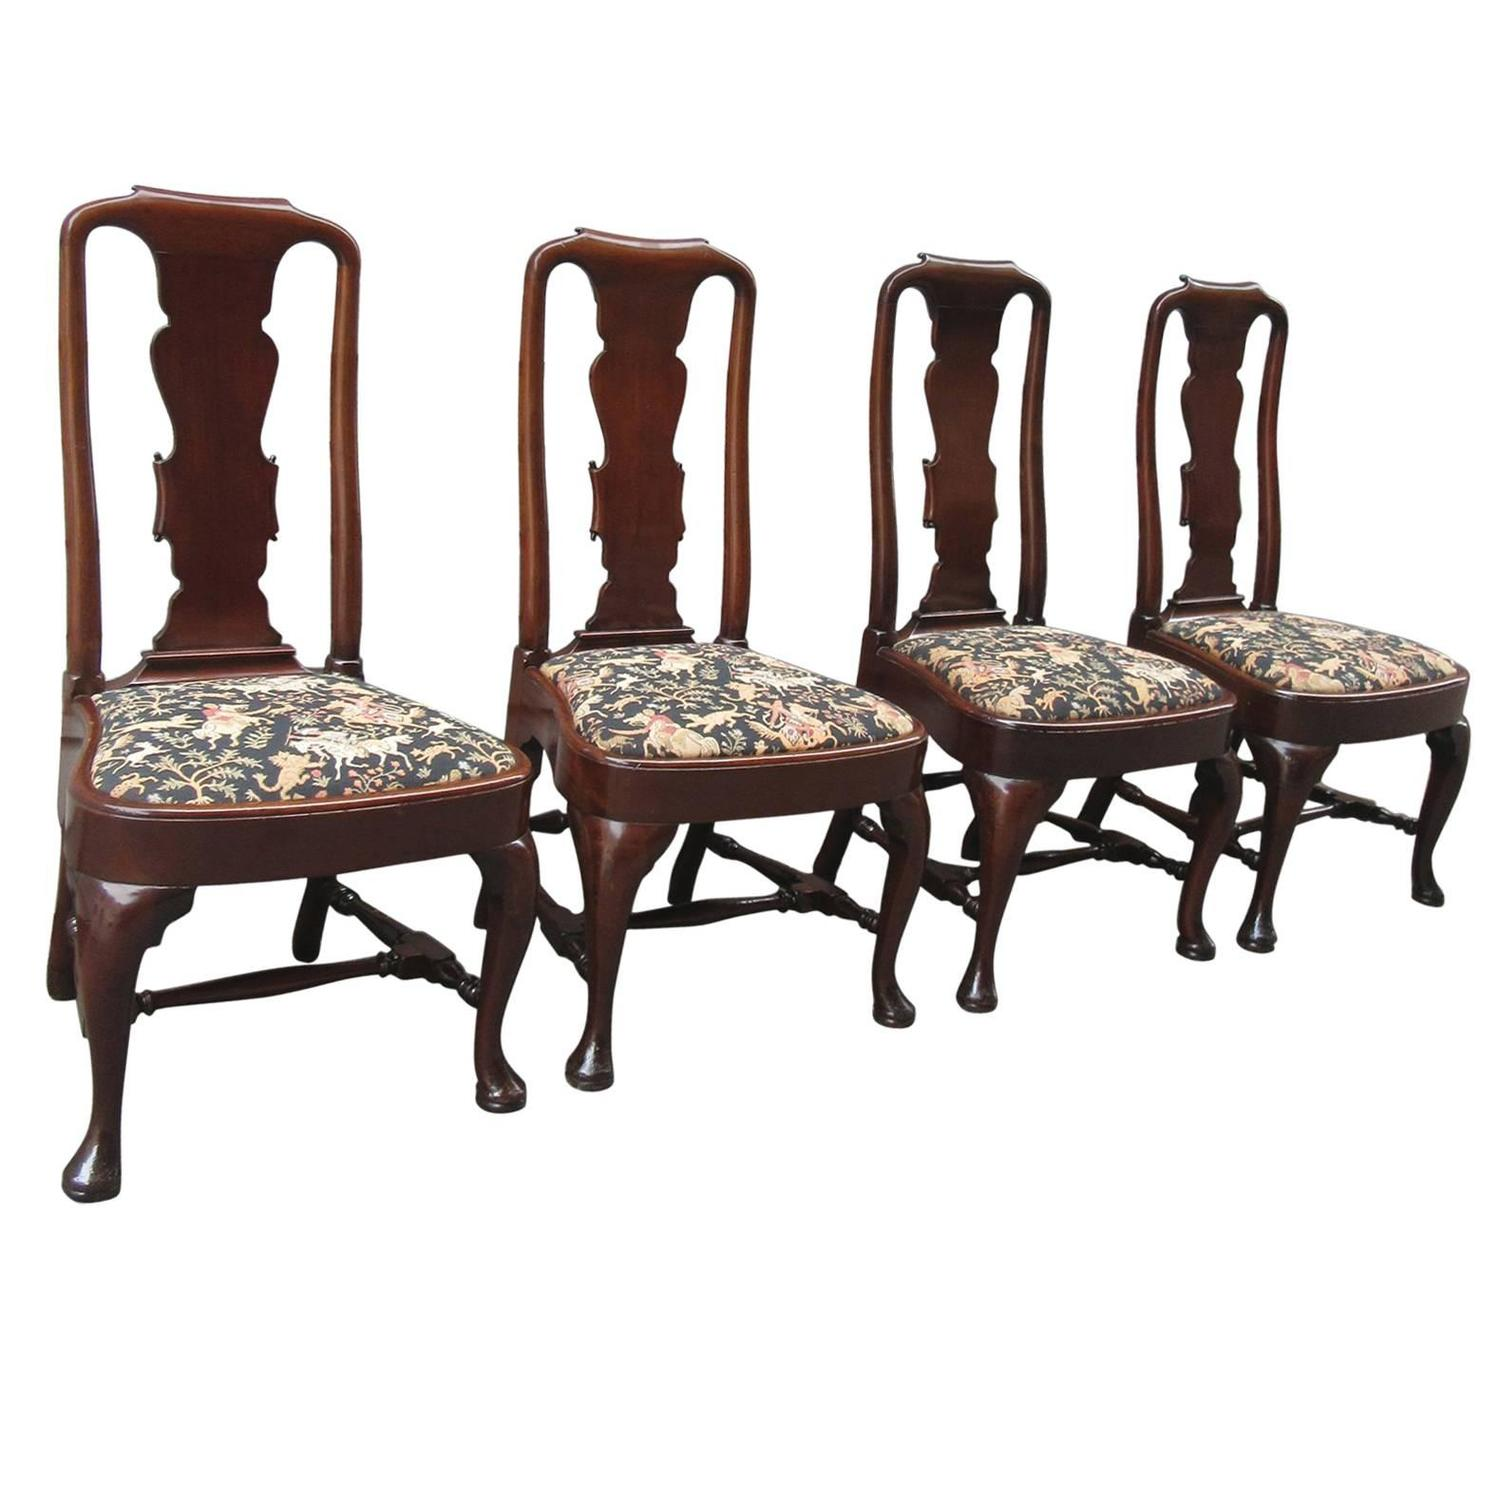 Queen Anne Dining Room Chairs - 36 For Sale at 1stdibs